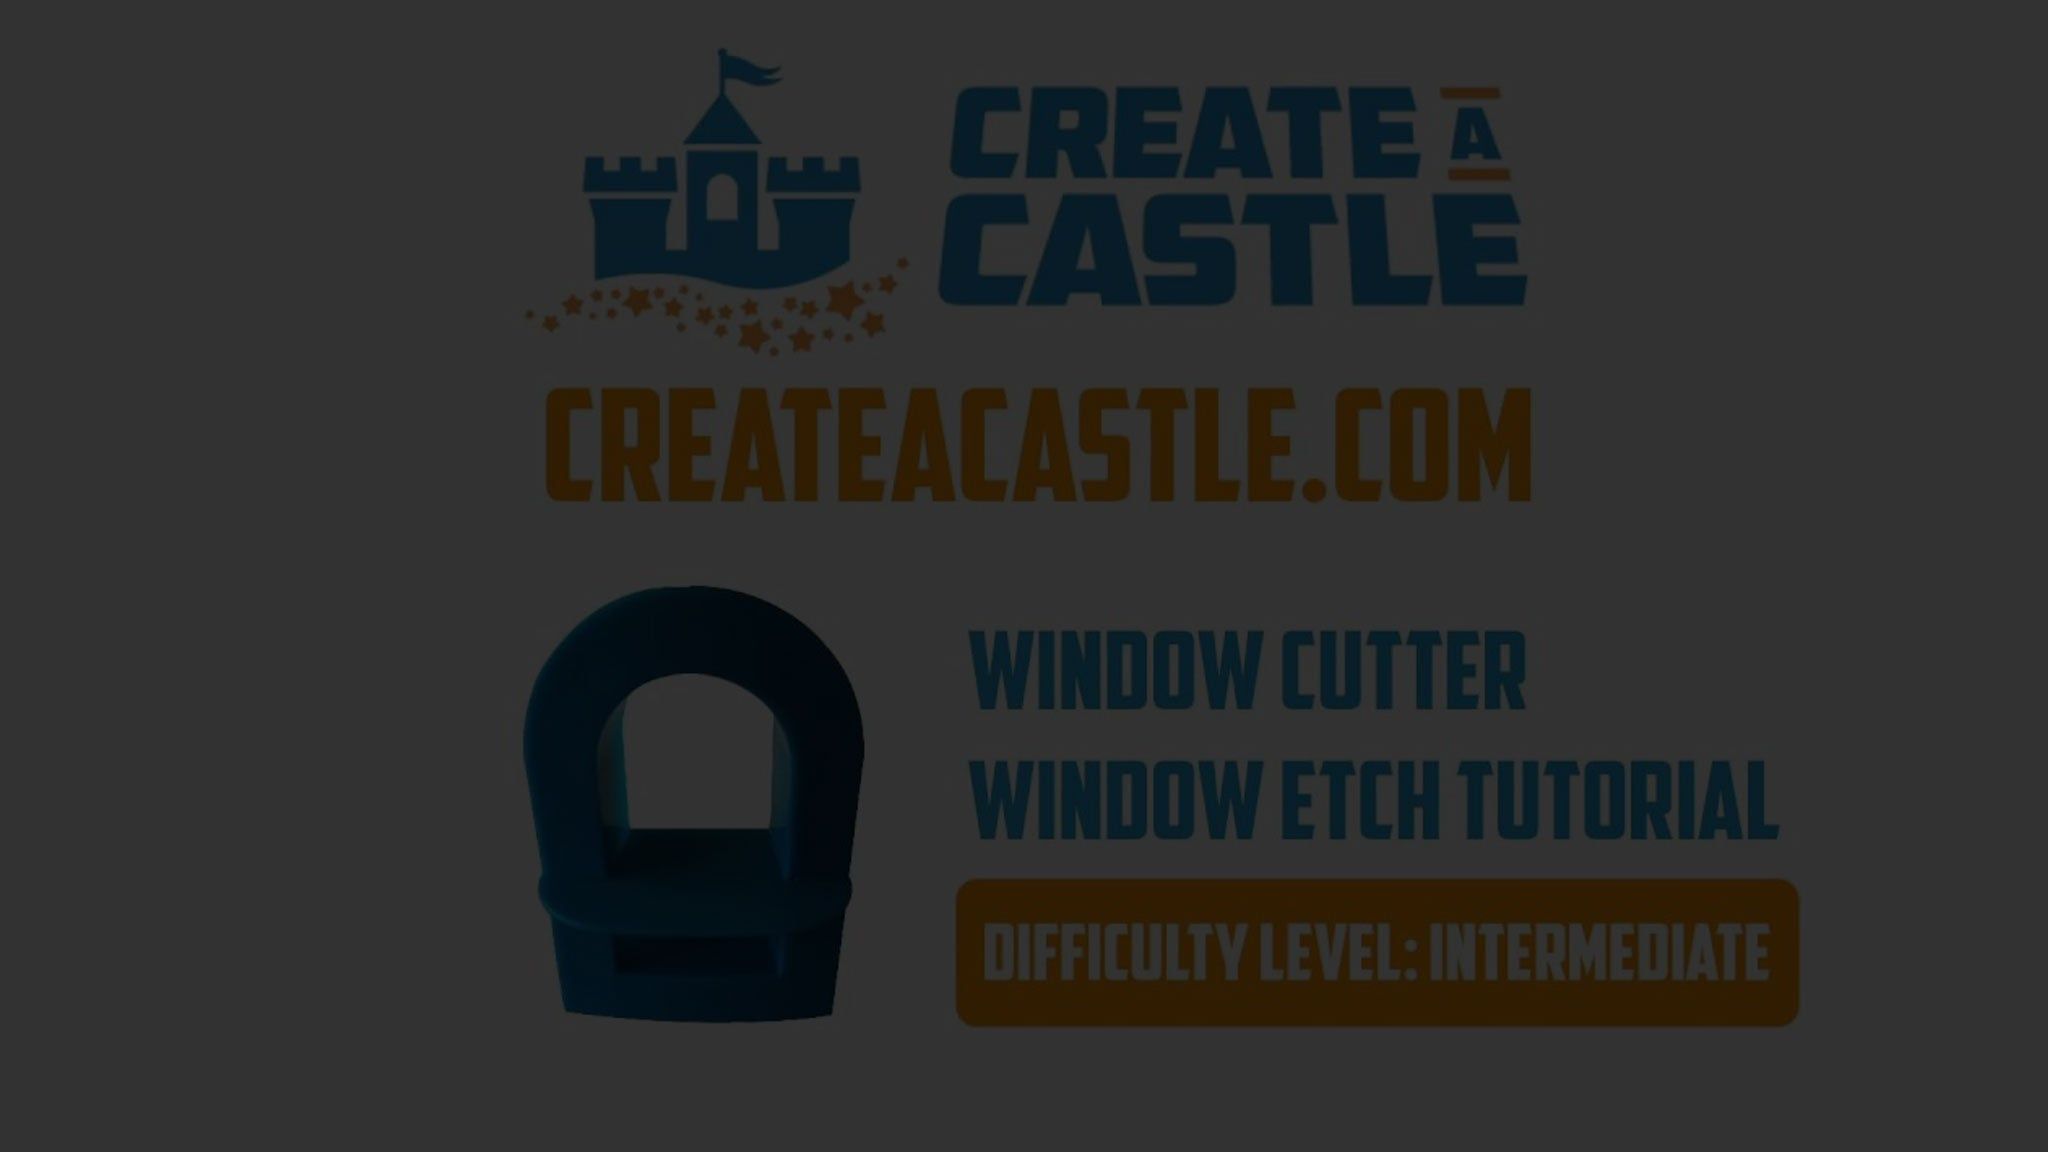 Create A Castle Window Cutter Tutorial – Cutting the perfect window on your sand castle